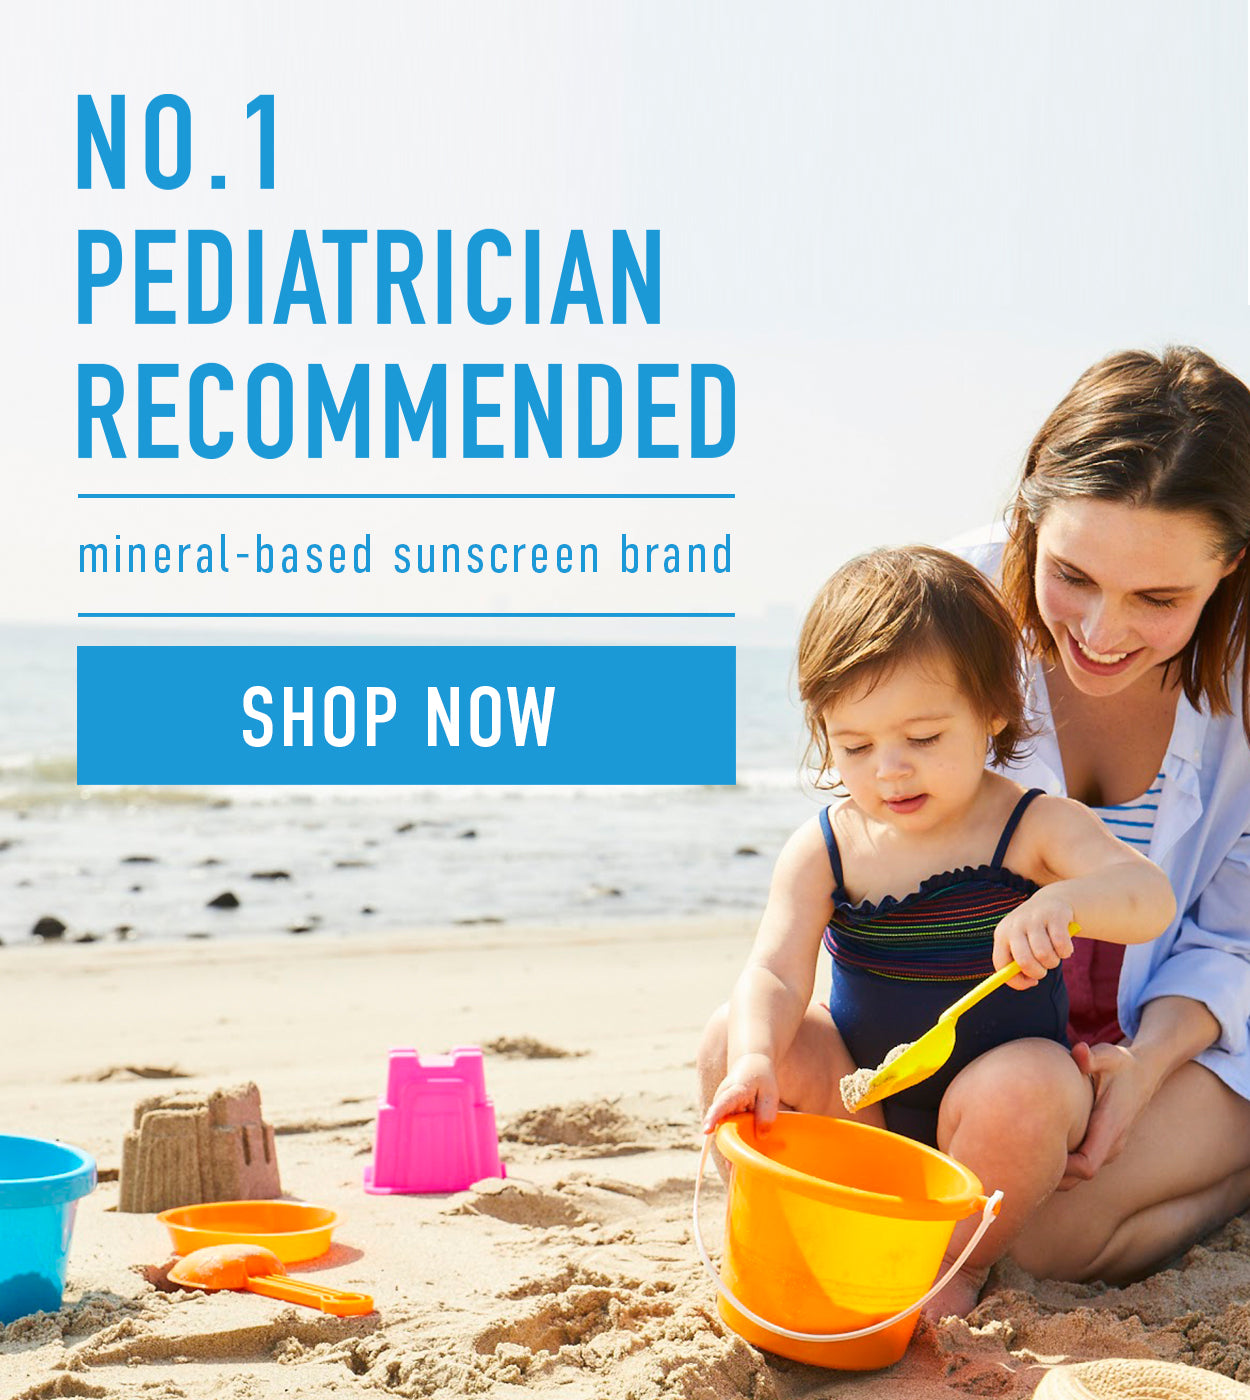 No. 1 pediatrition recommended mineral-based sunscreen brand.